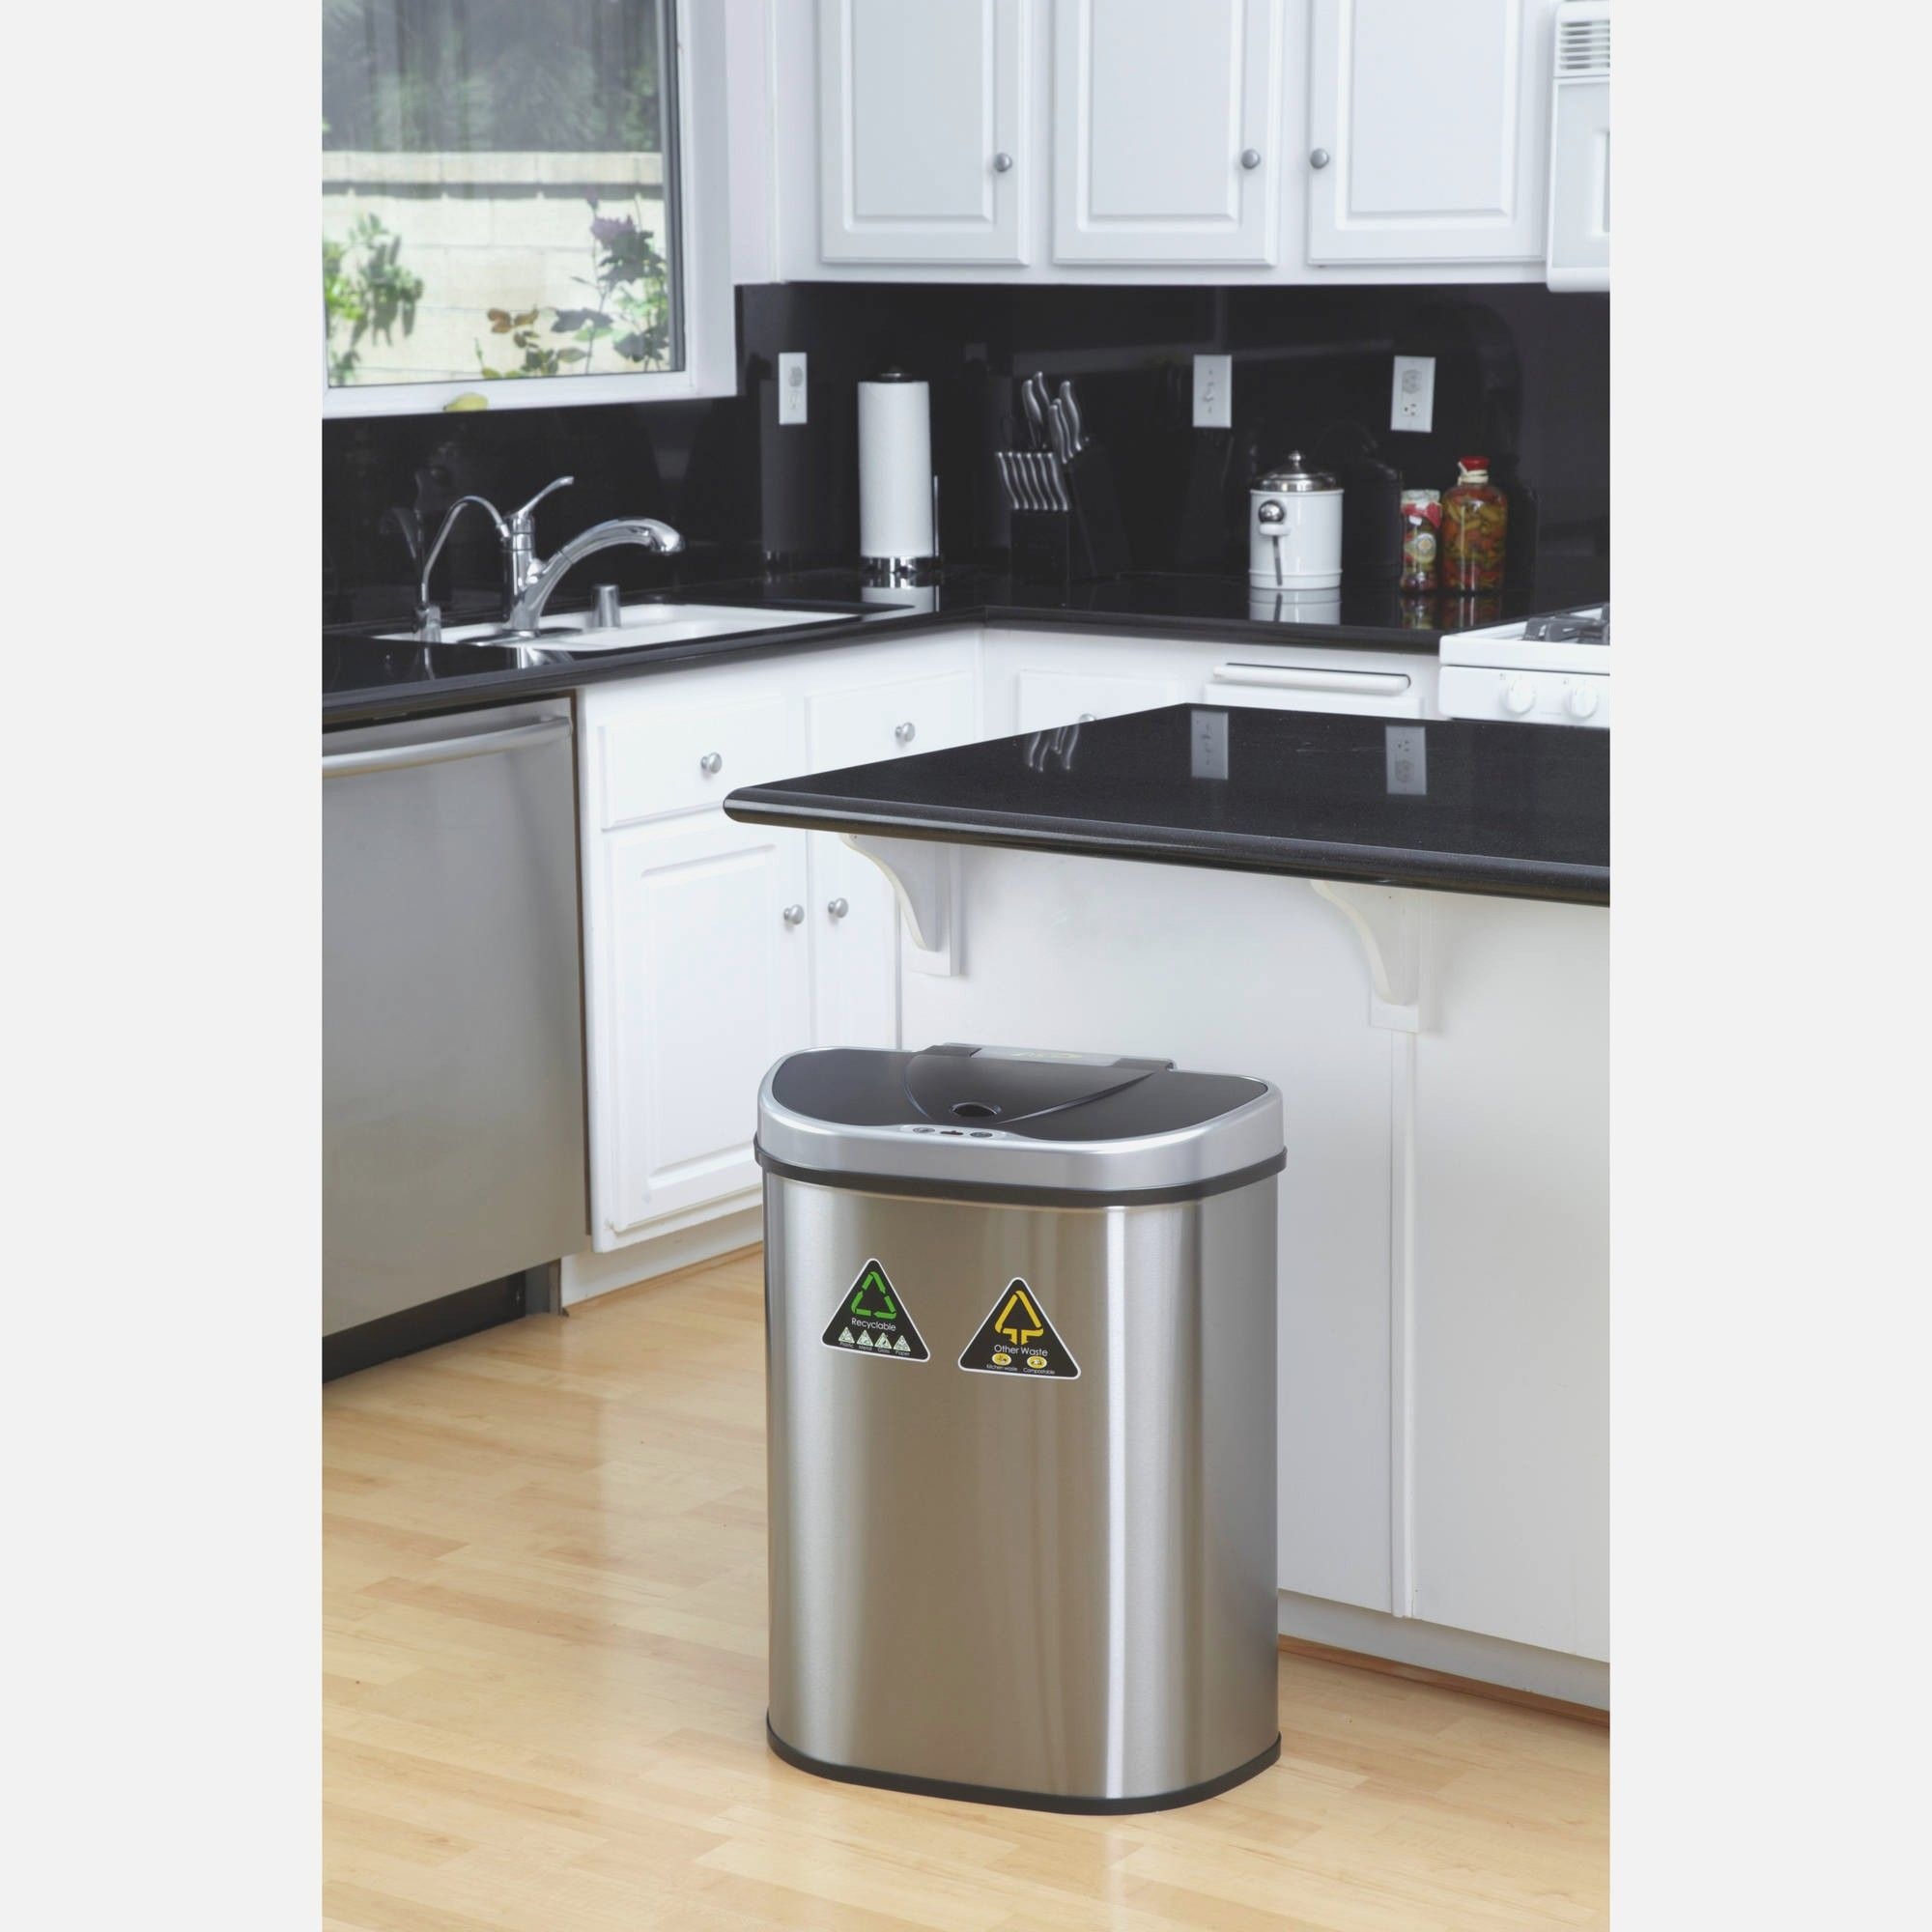 Kitchen island with Trash Bin black kitchen island with trash bin